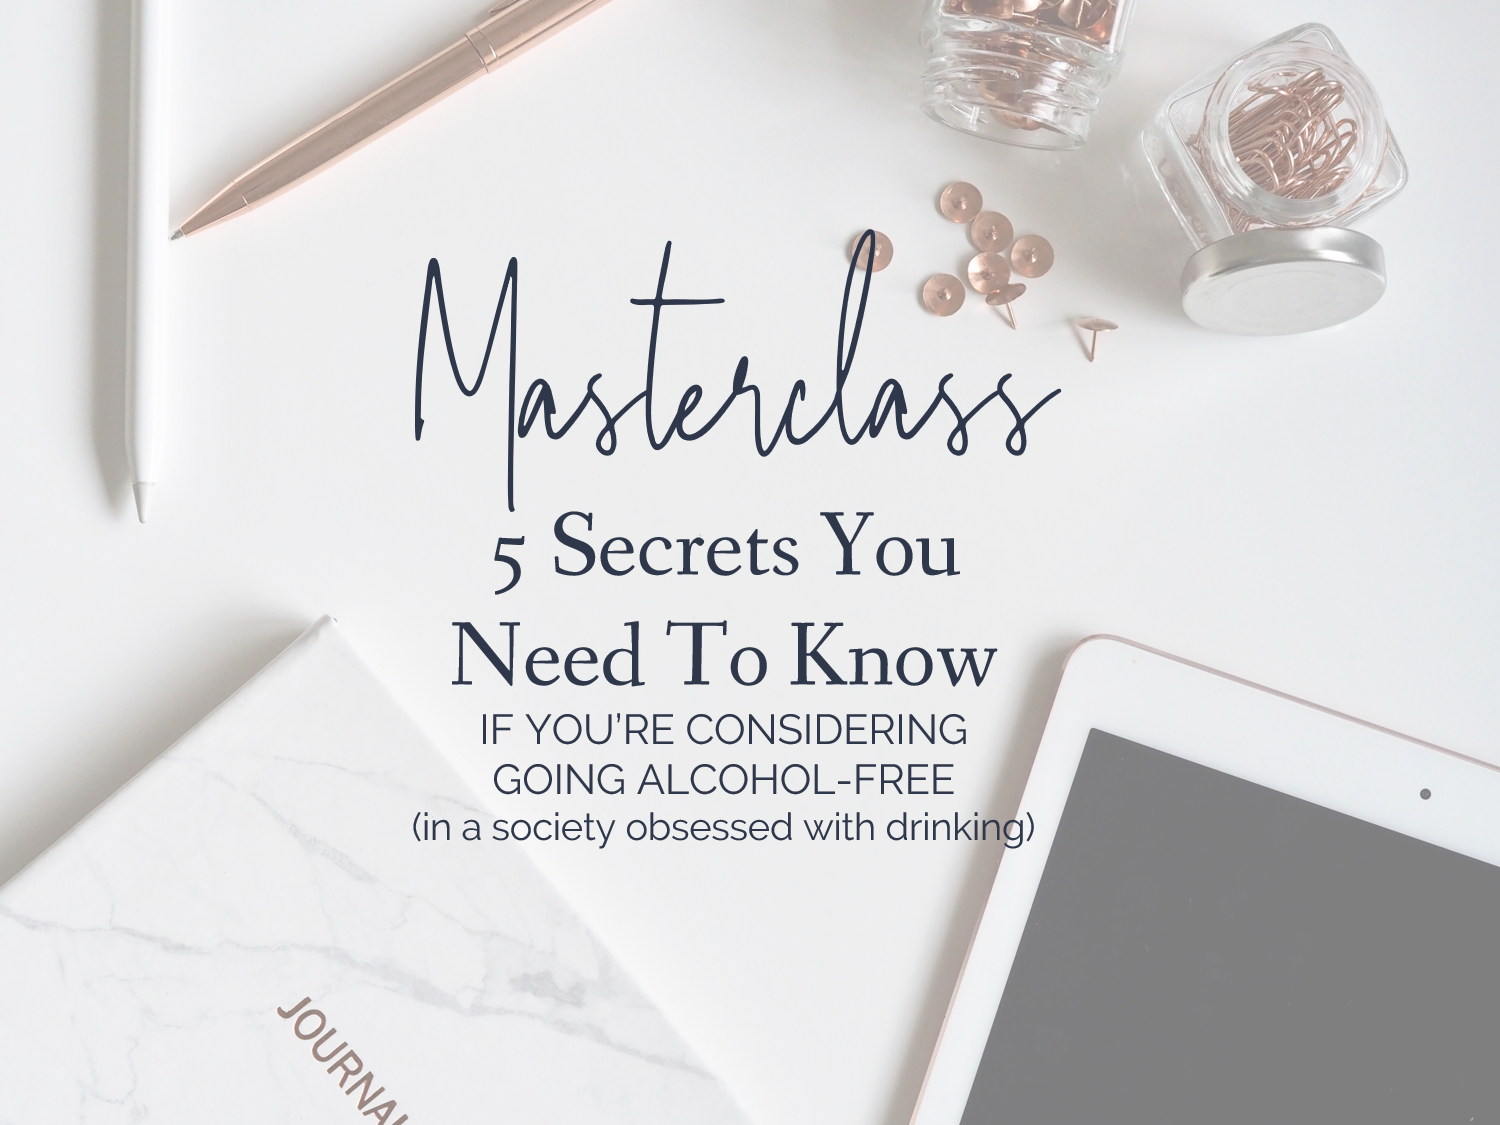 Get instant access to this 30-Minute masterclass by clicking below!